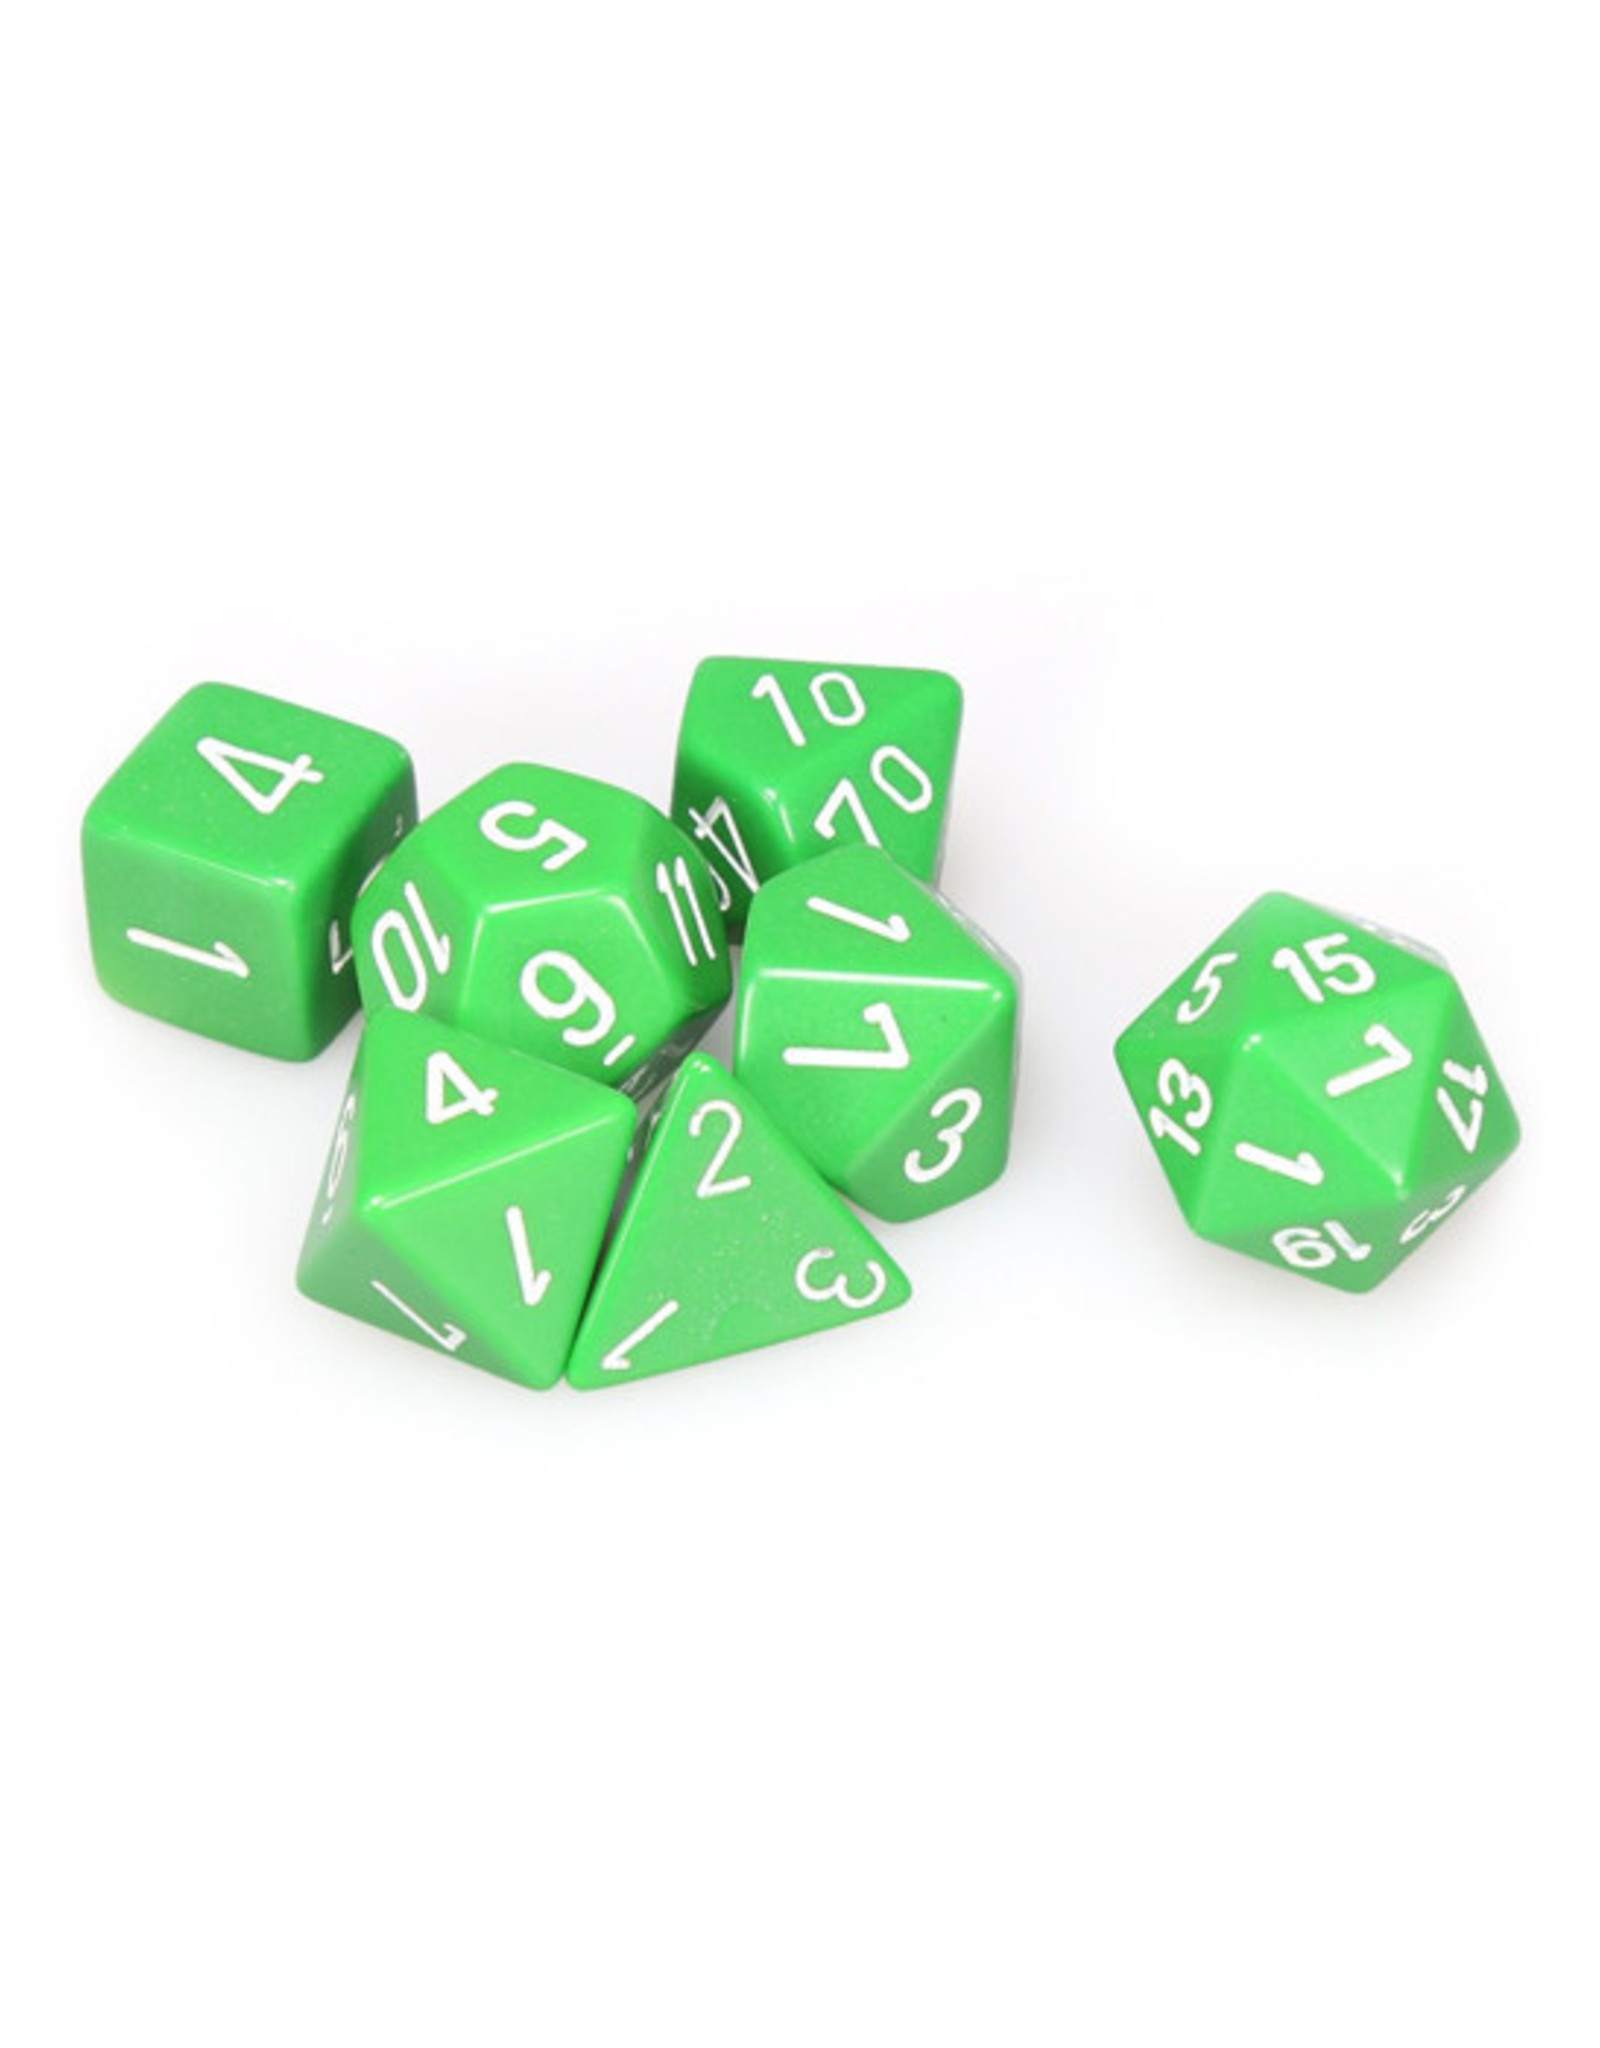 Chessex Chessex: Poly 7 Set - Opaque - Green w/ White